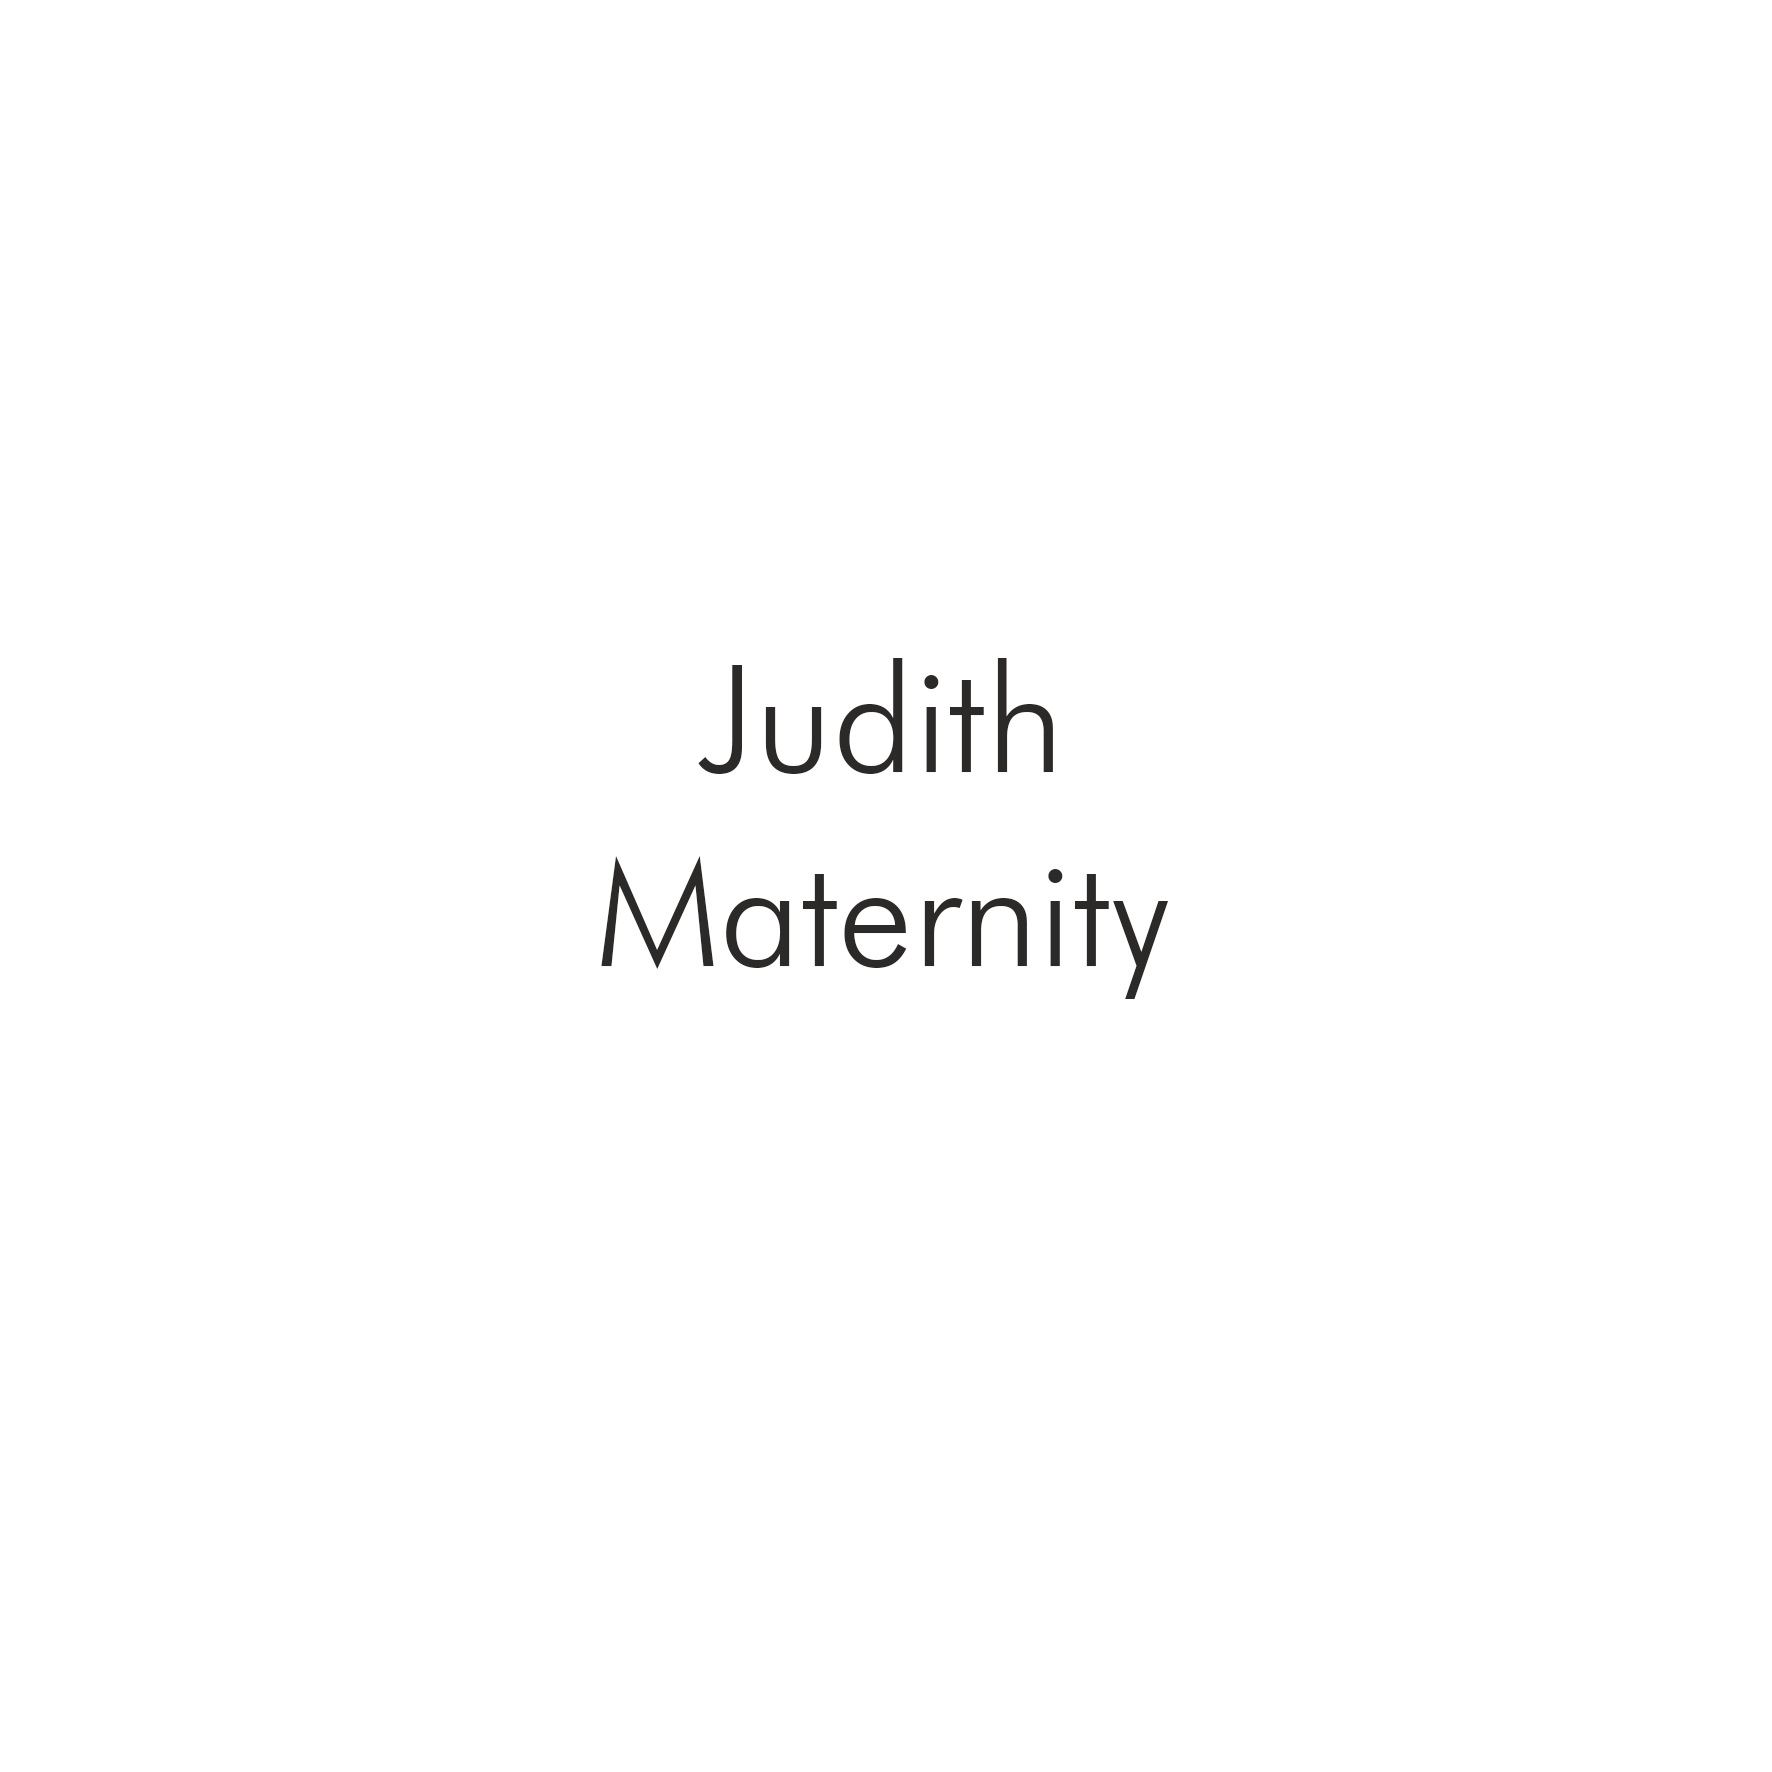 Judith Maternity.png